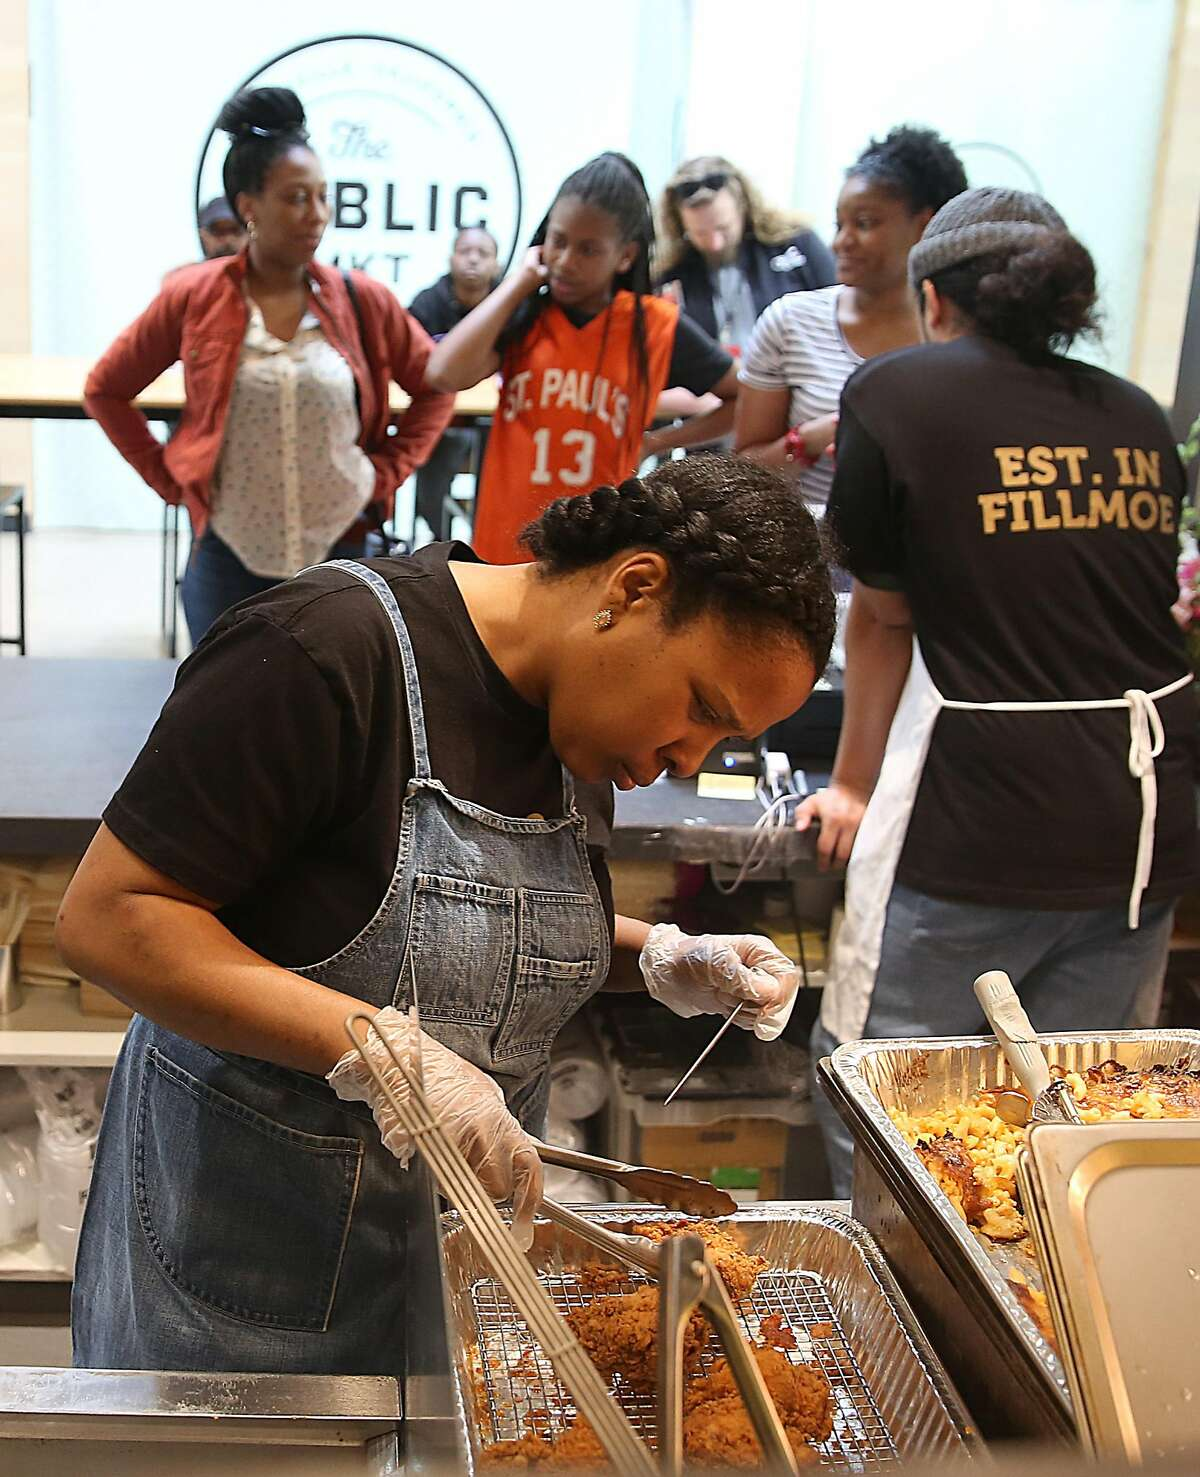 Owner Fernay McPherson takes temperature while frying her chicken at Minne Bell's Soul Movement in the Public Market on Monday, May 7, 2018 in Emeryville, Calif.